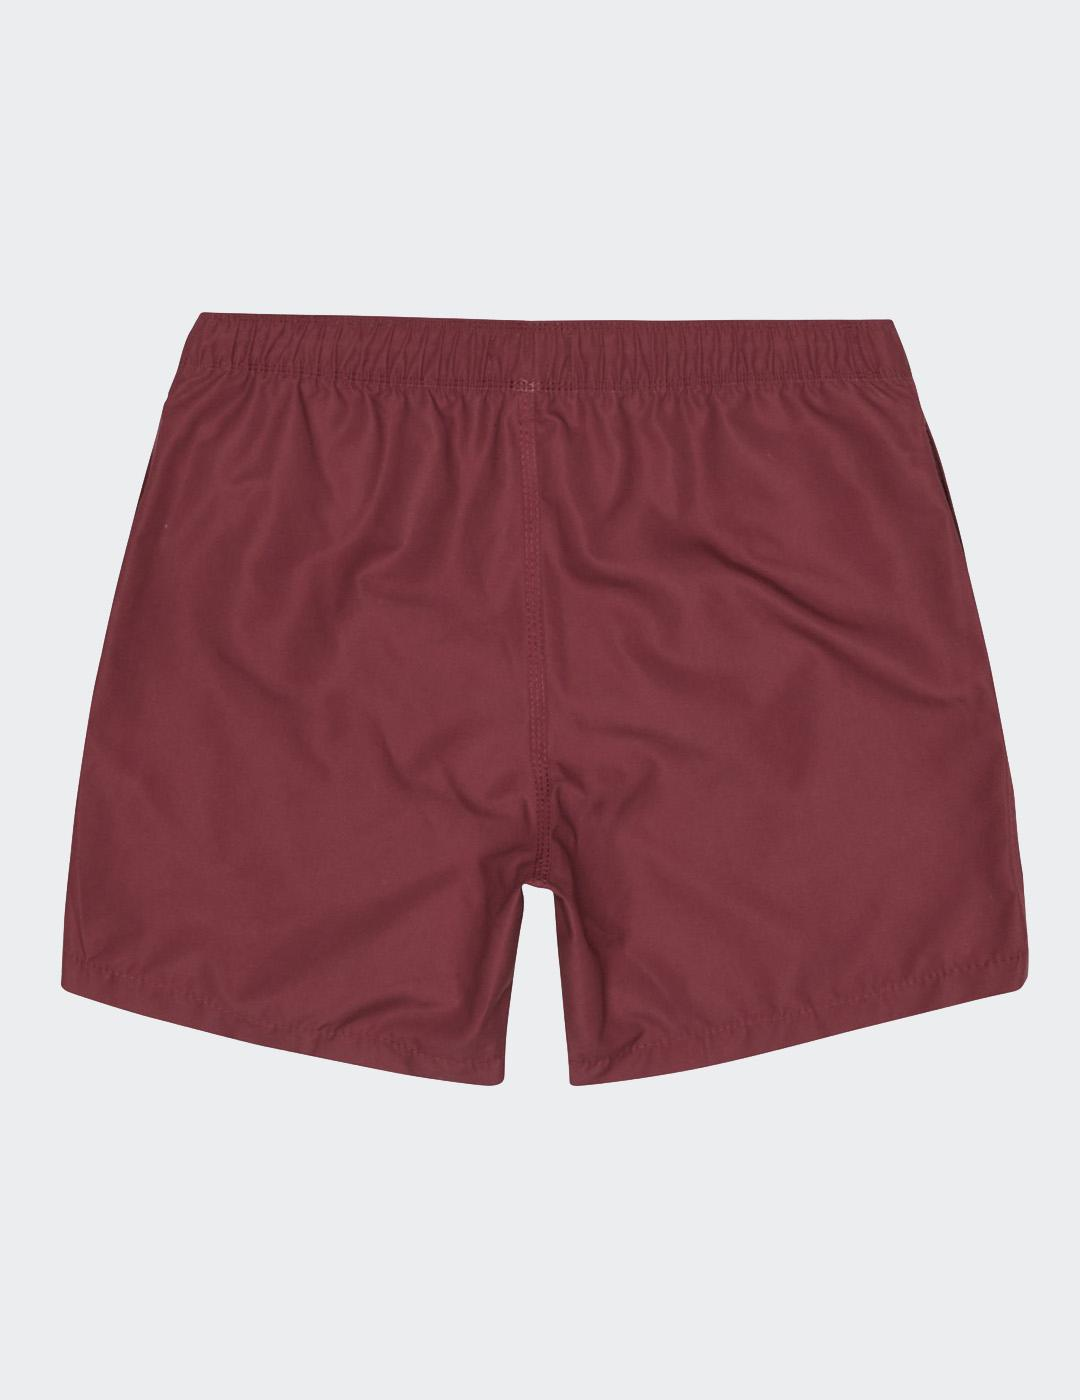 Bañador Billabong ALL DAY LB 16' BOARDSHORT blood